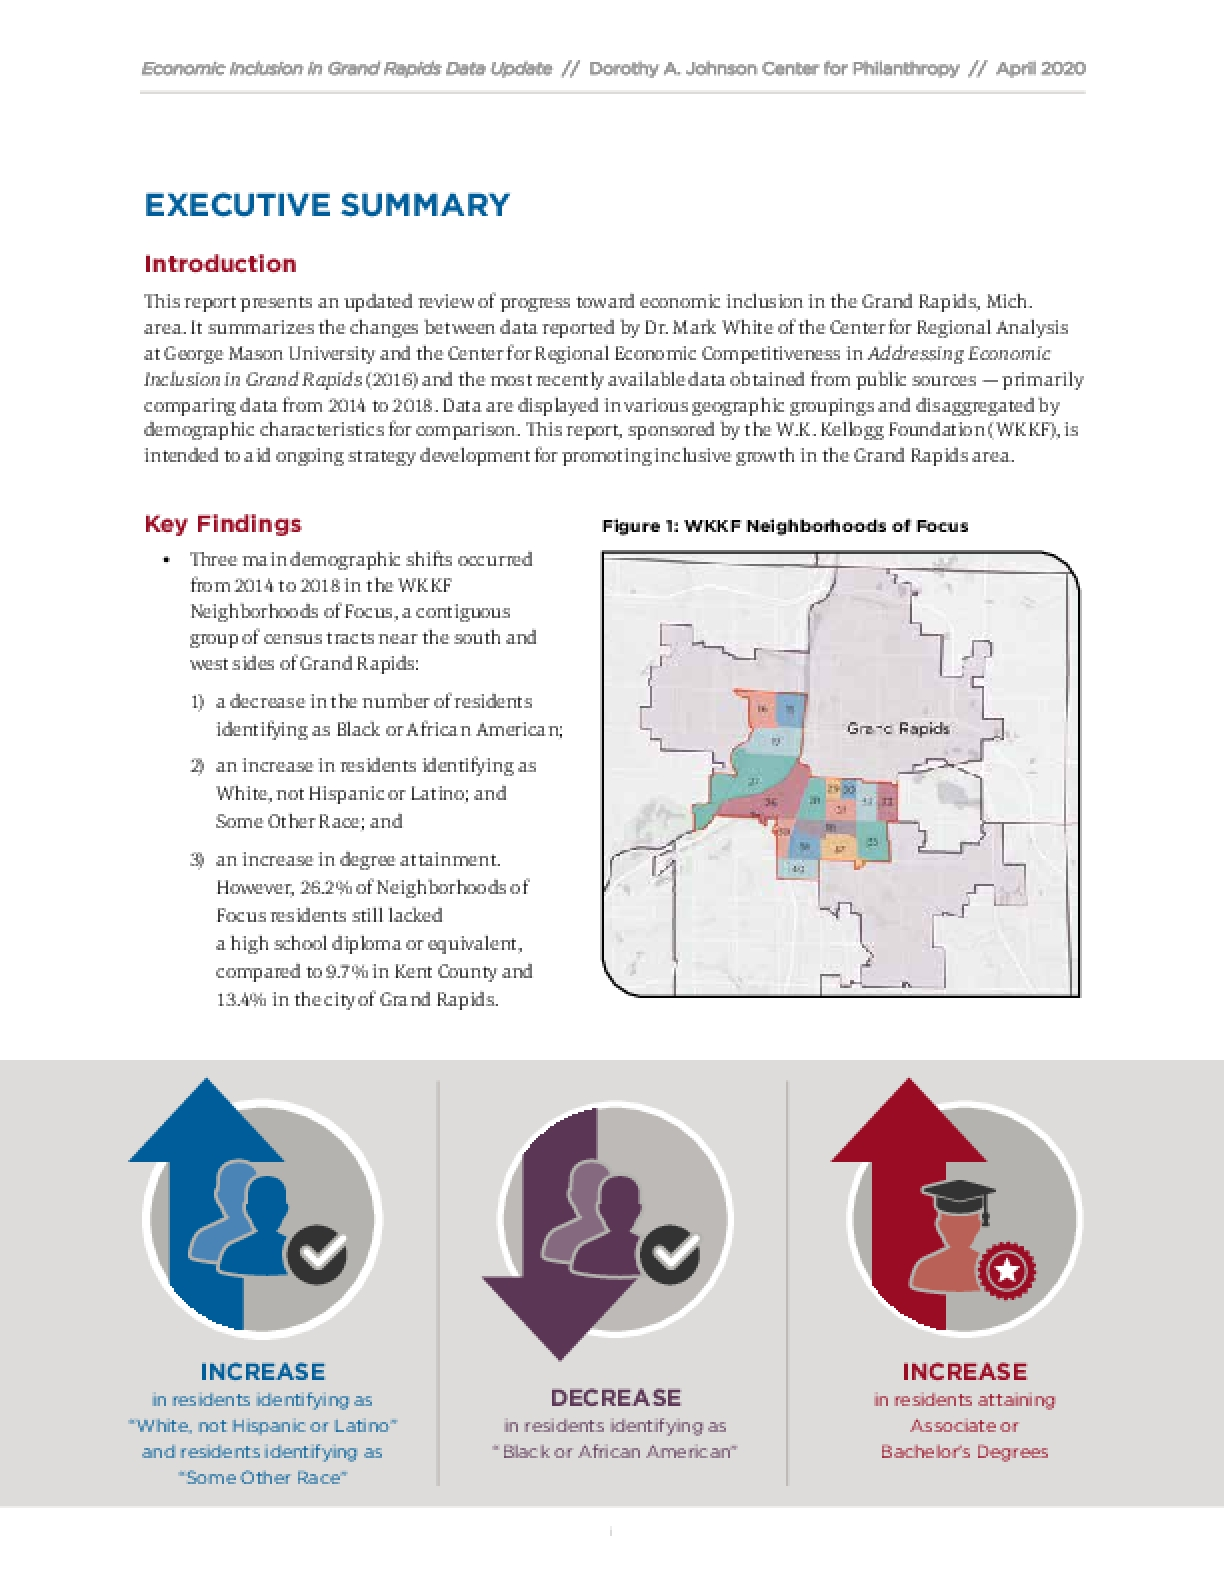 Economic Inclusion in Grand Rapids Data Update - Executive Summary